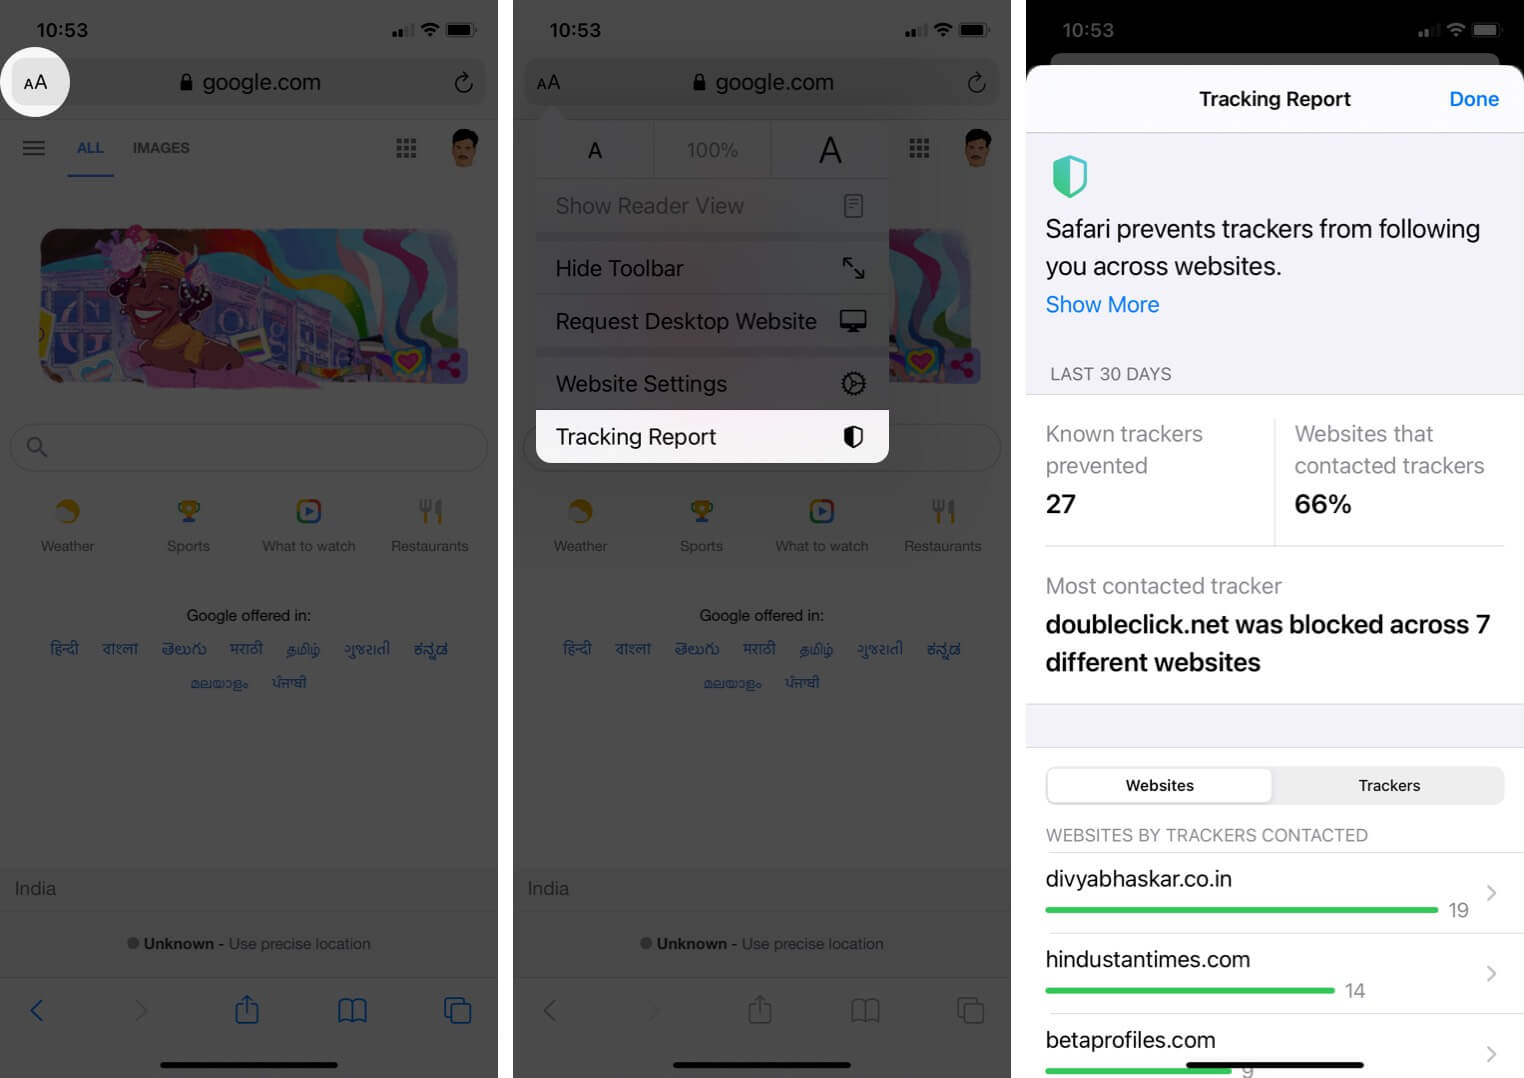 view tracking report in safari on iphone running ios 14